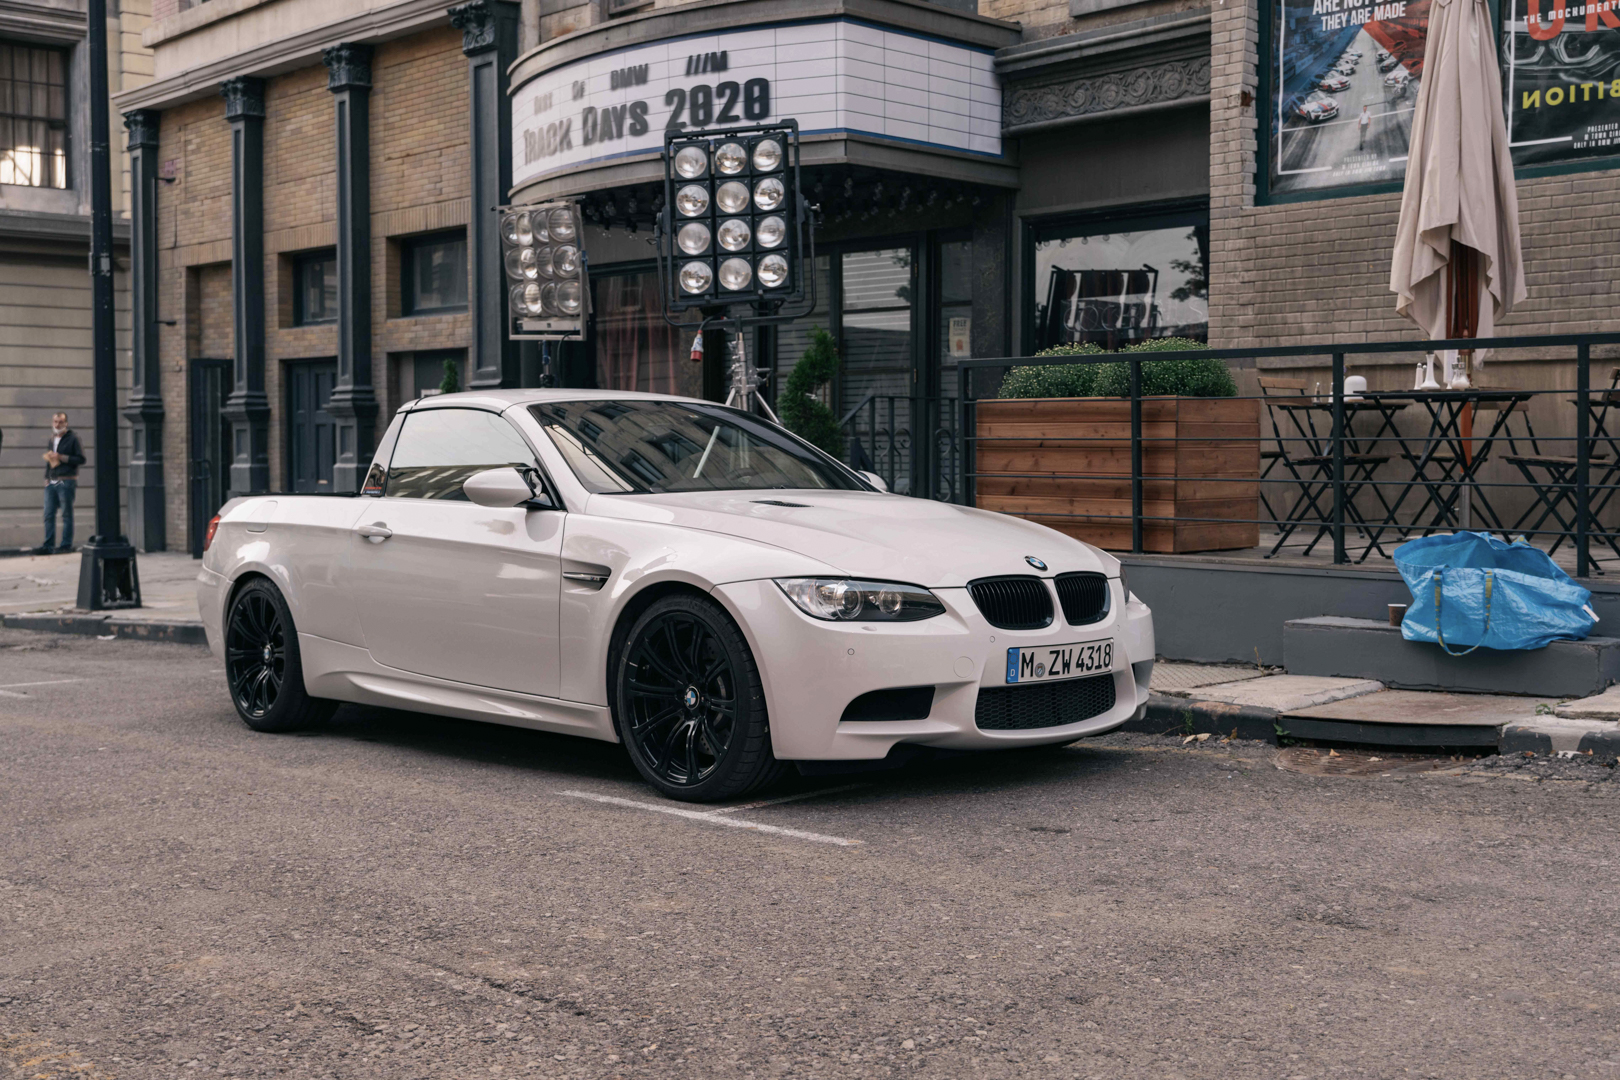 BMW M Town 7 of 30